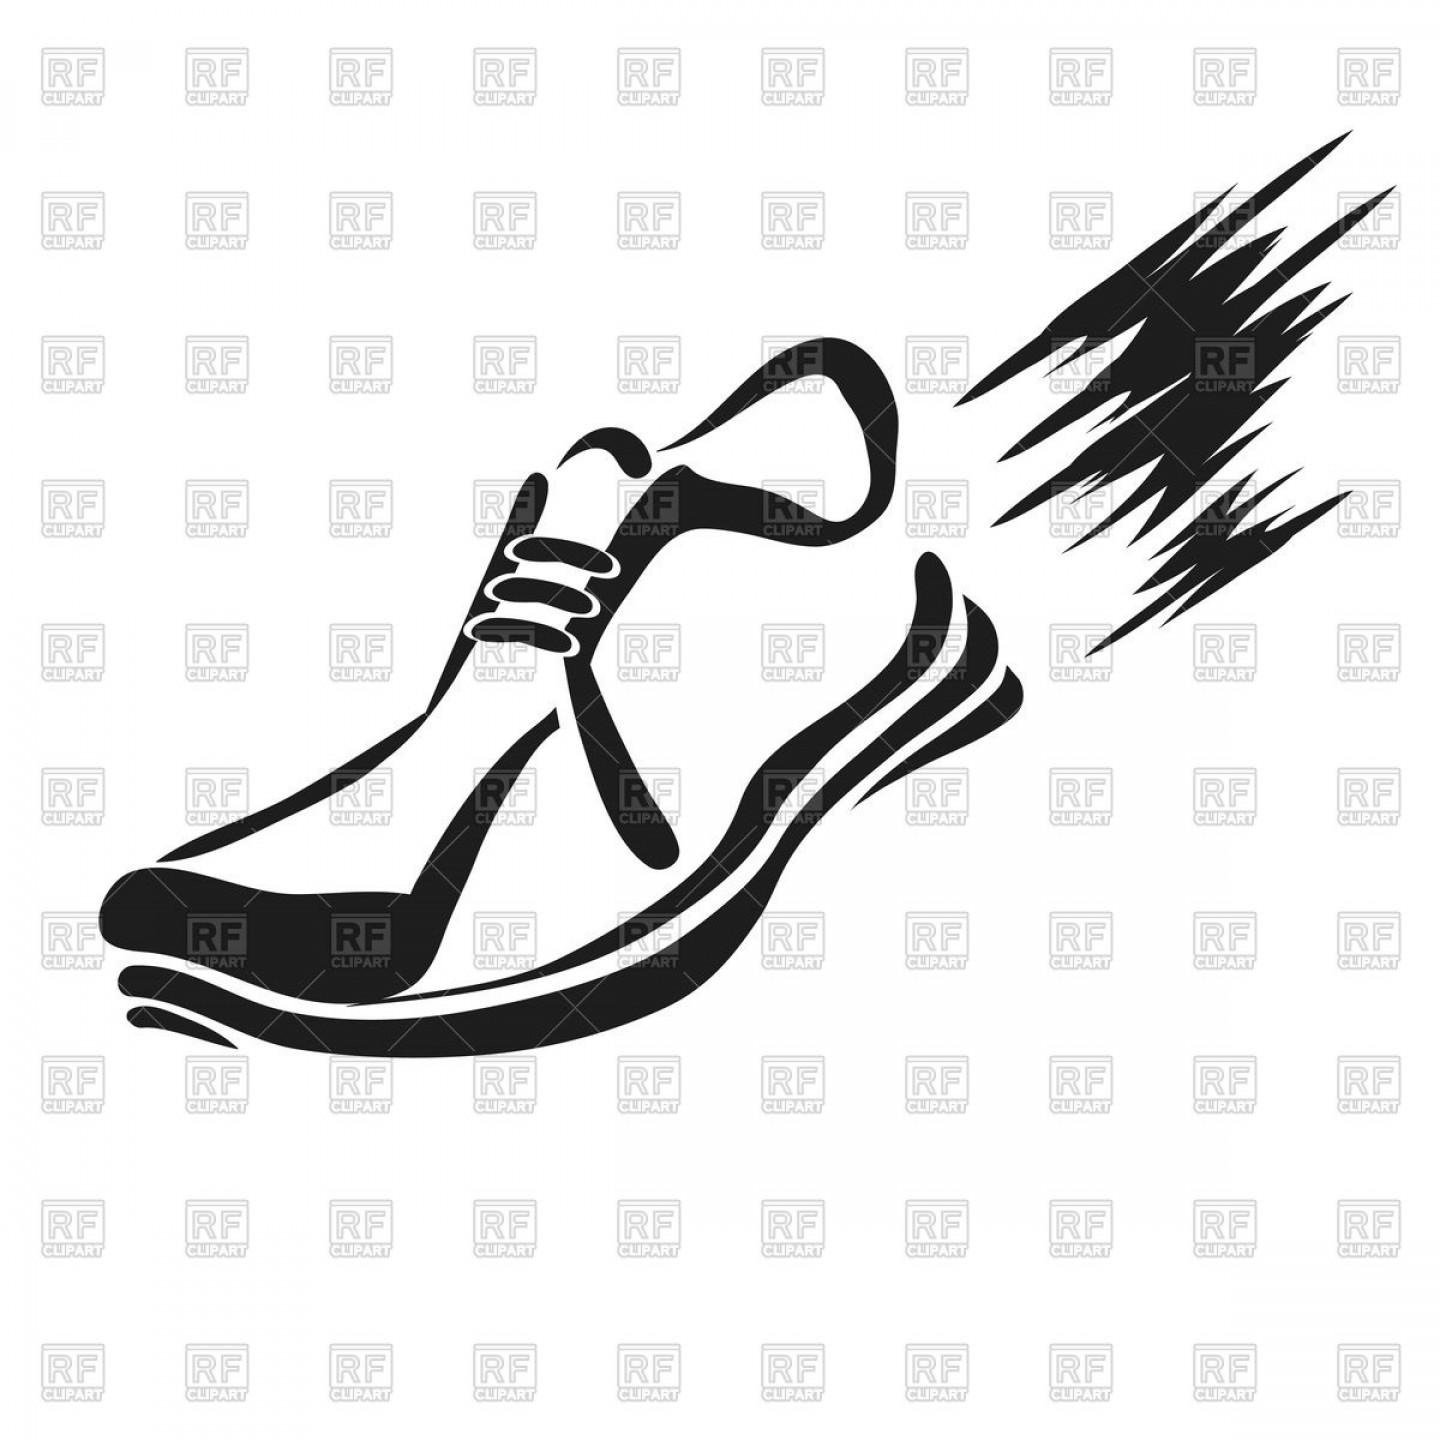 Royalty free clipart shoes graphic download Best Free Running Shoe Silhouette Vector Library ~ Vector ... graphic download